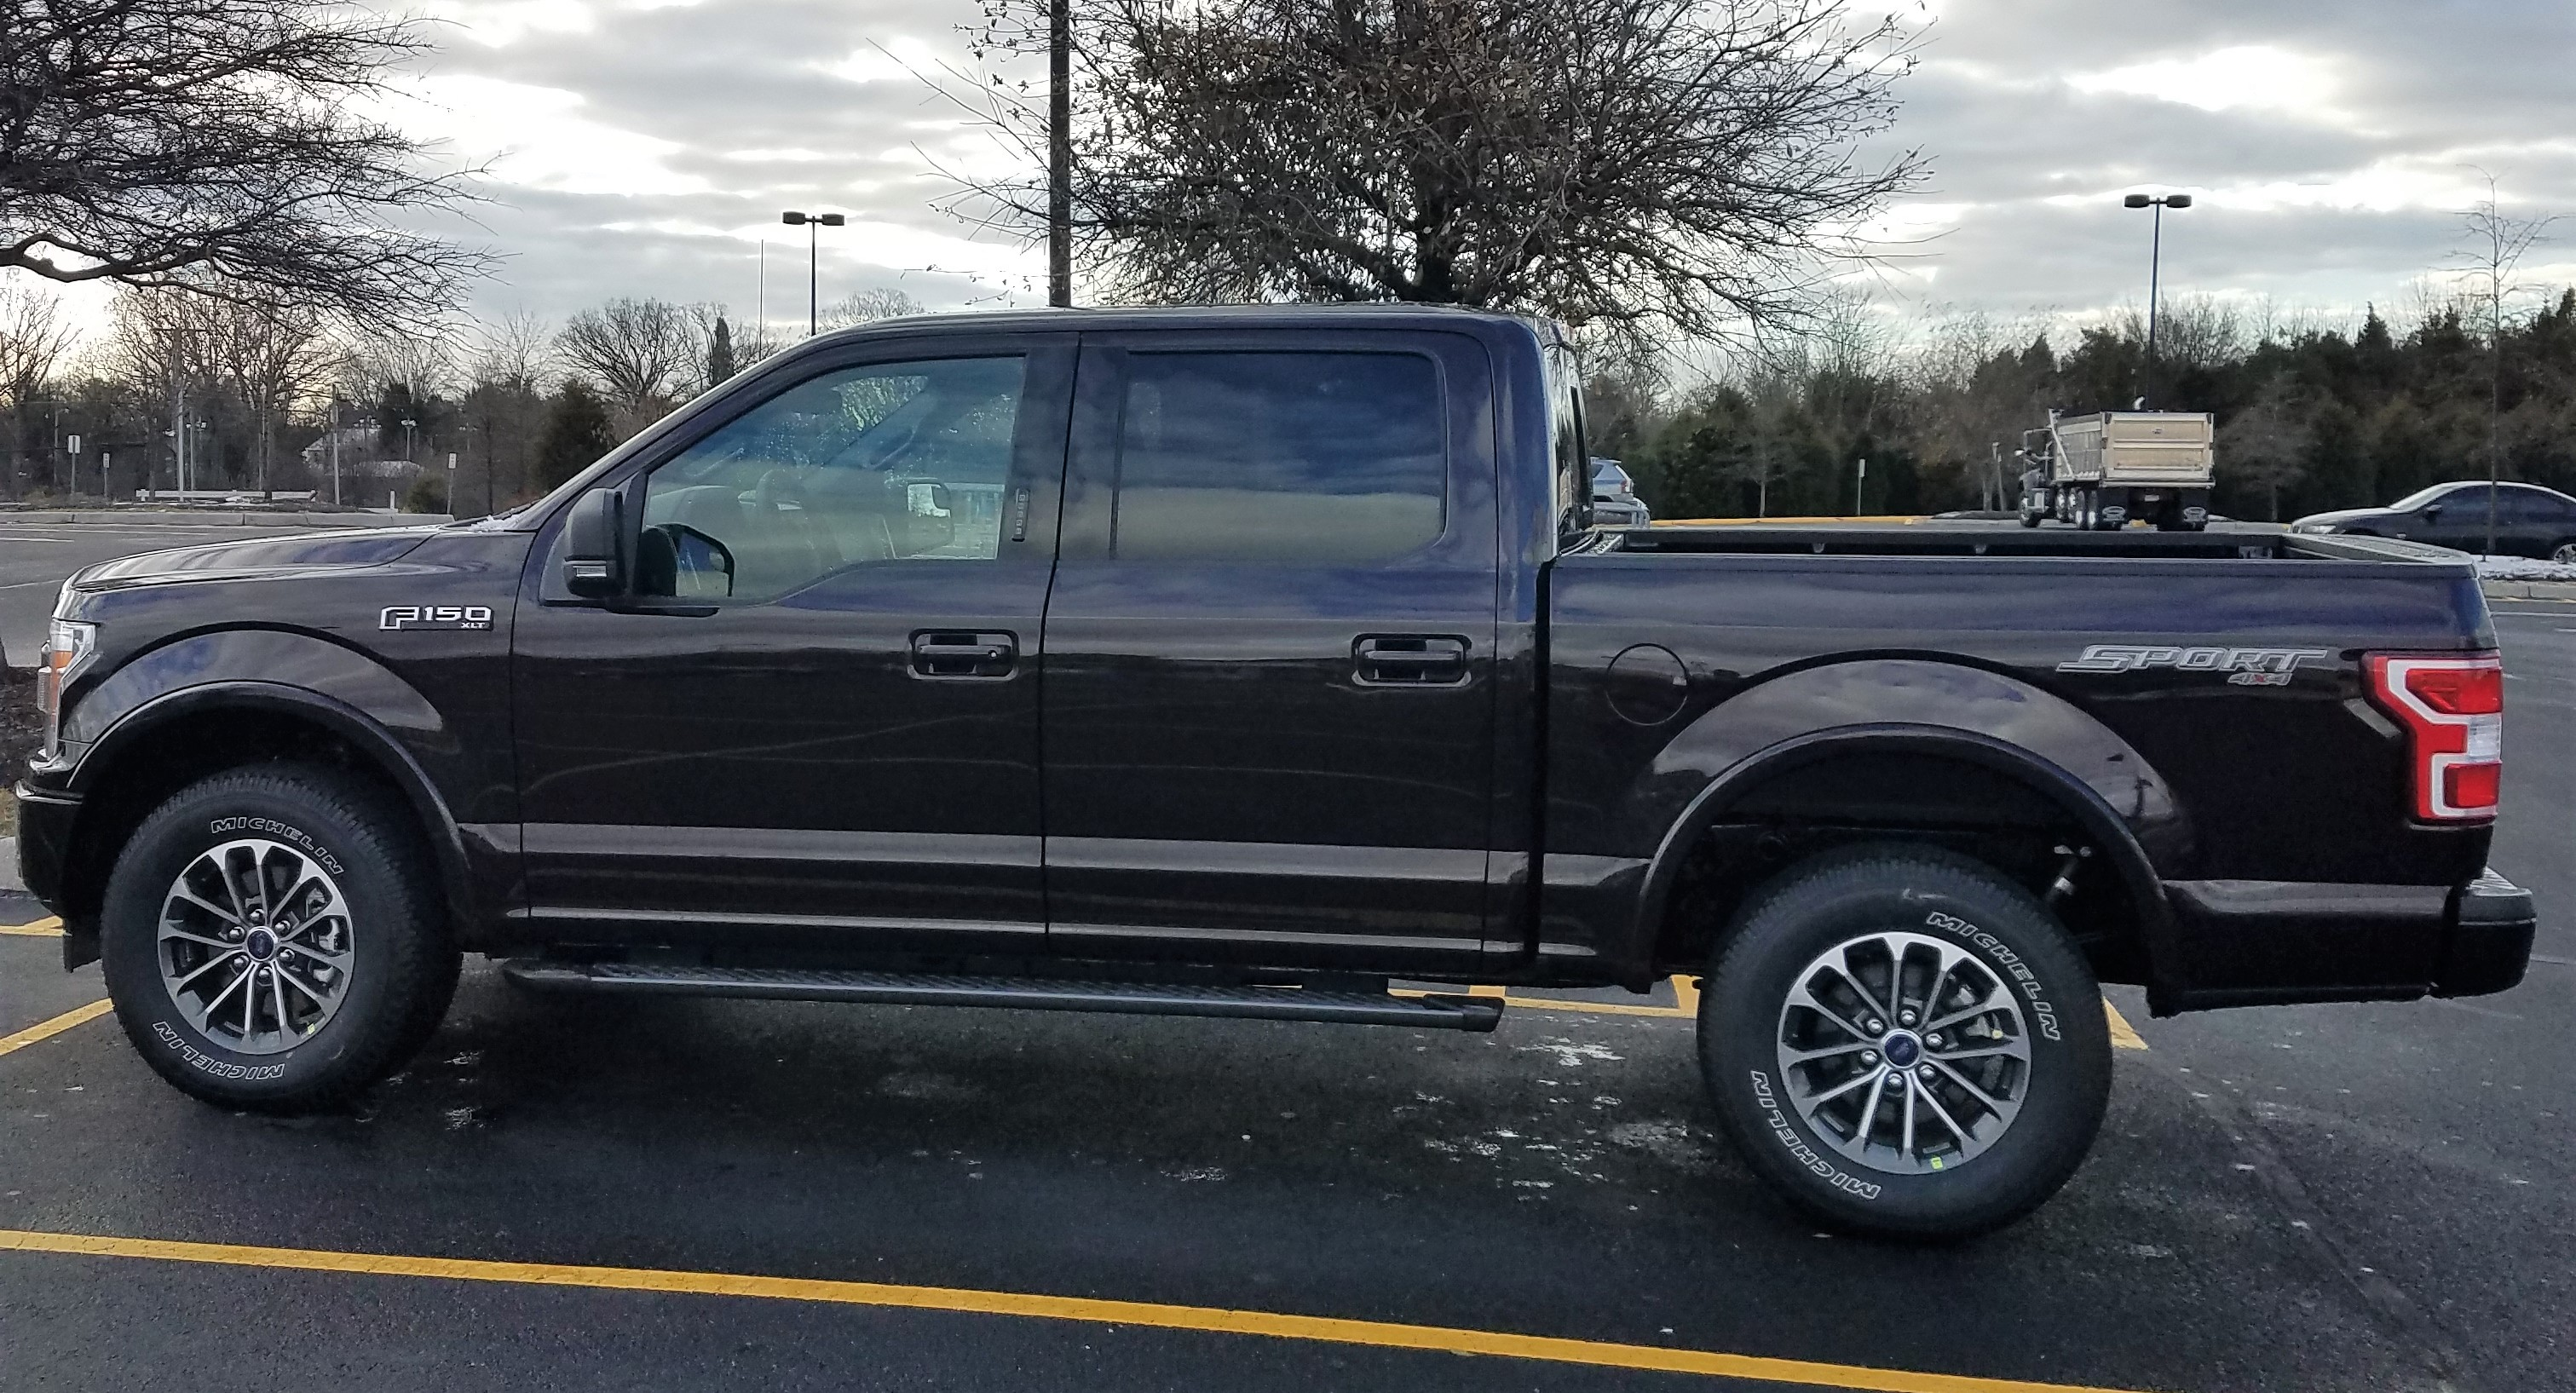 First time F150 owner and forum newbie